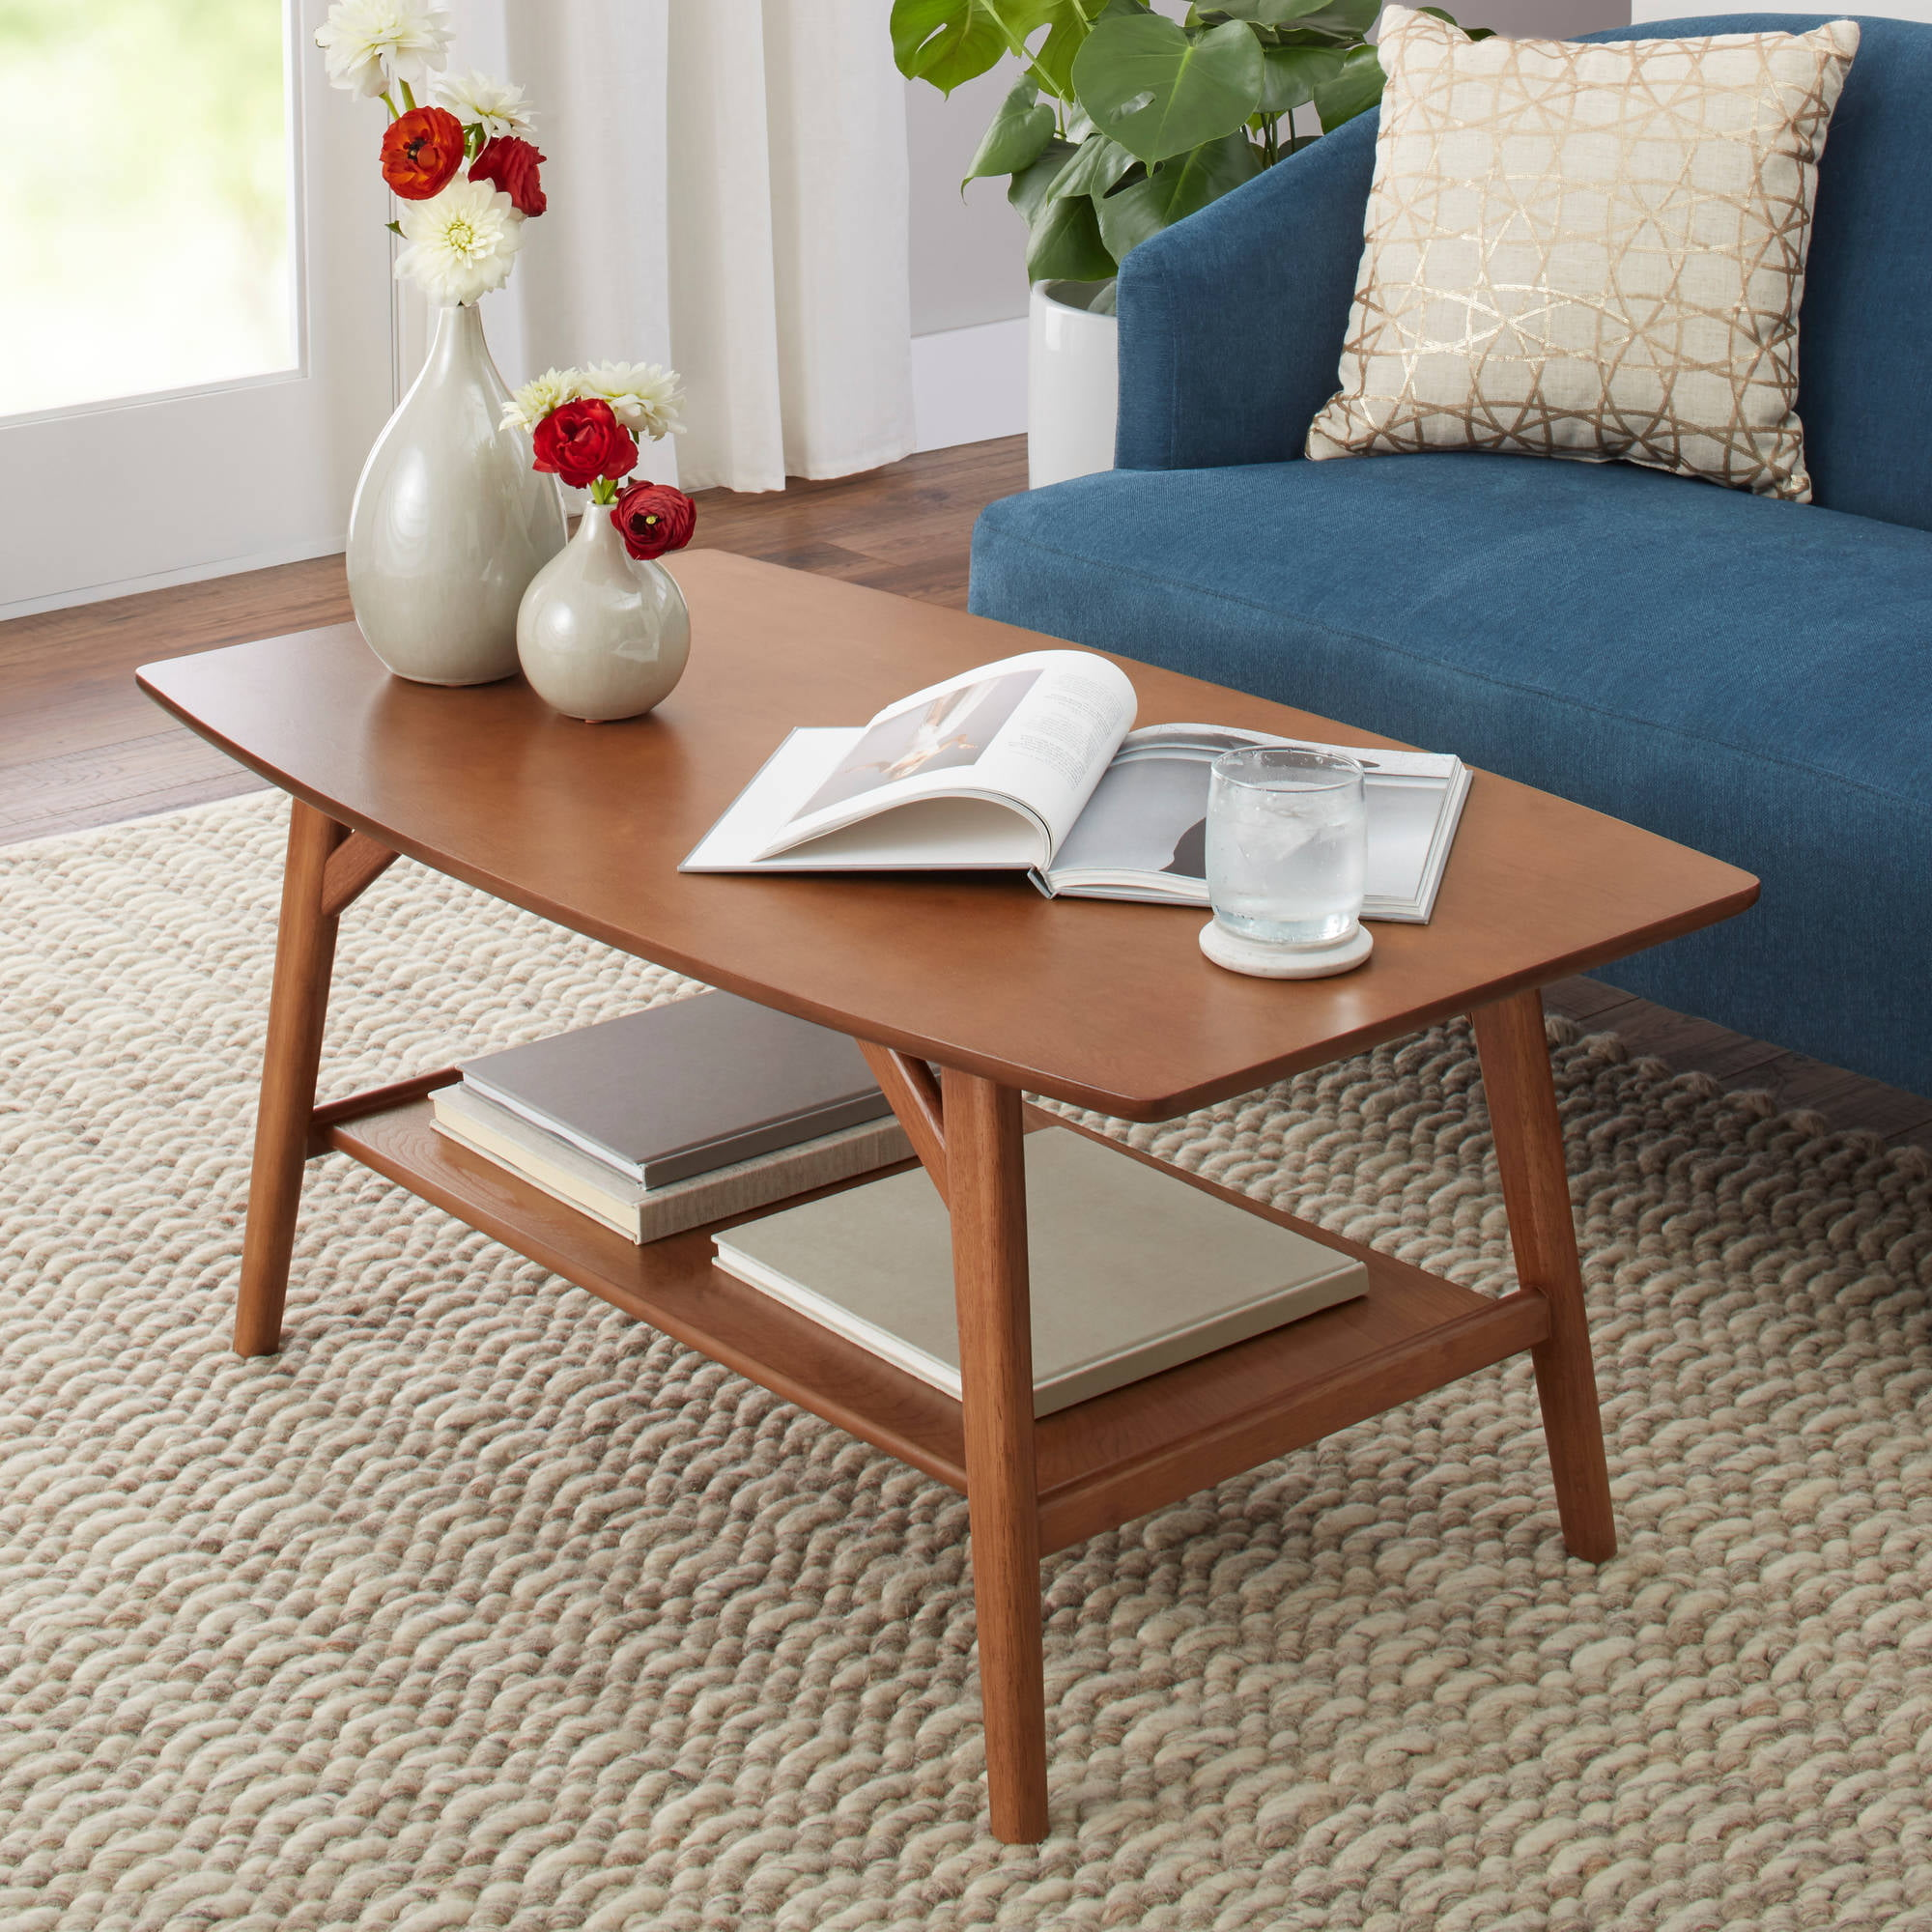 Walmart Furnitures: Coffee Tables